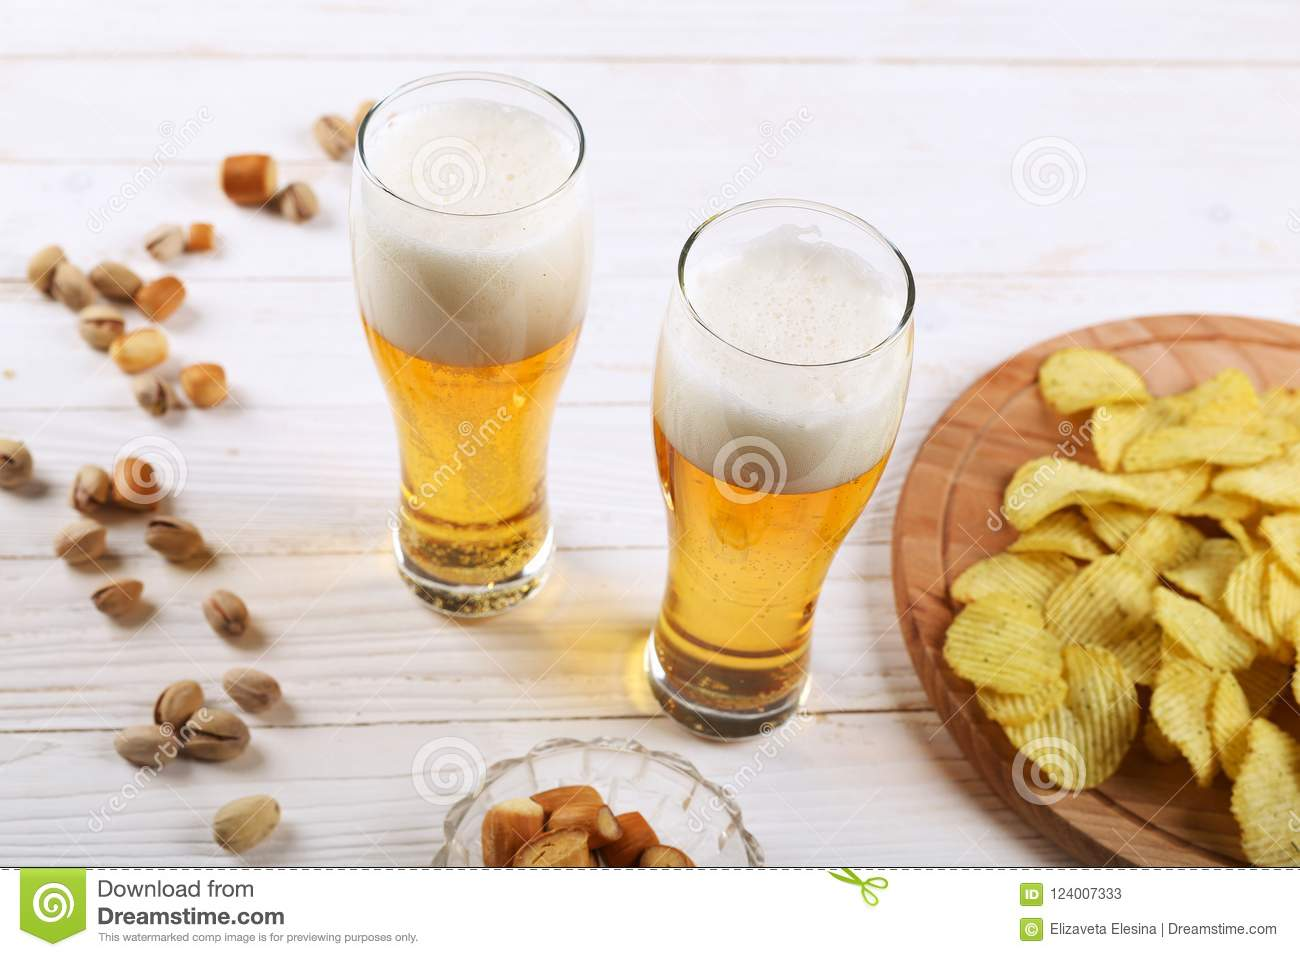 Two glass of beer and snacks on a white wooden table. Chips, pistachios, dry cheese.